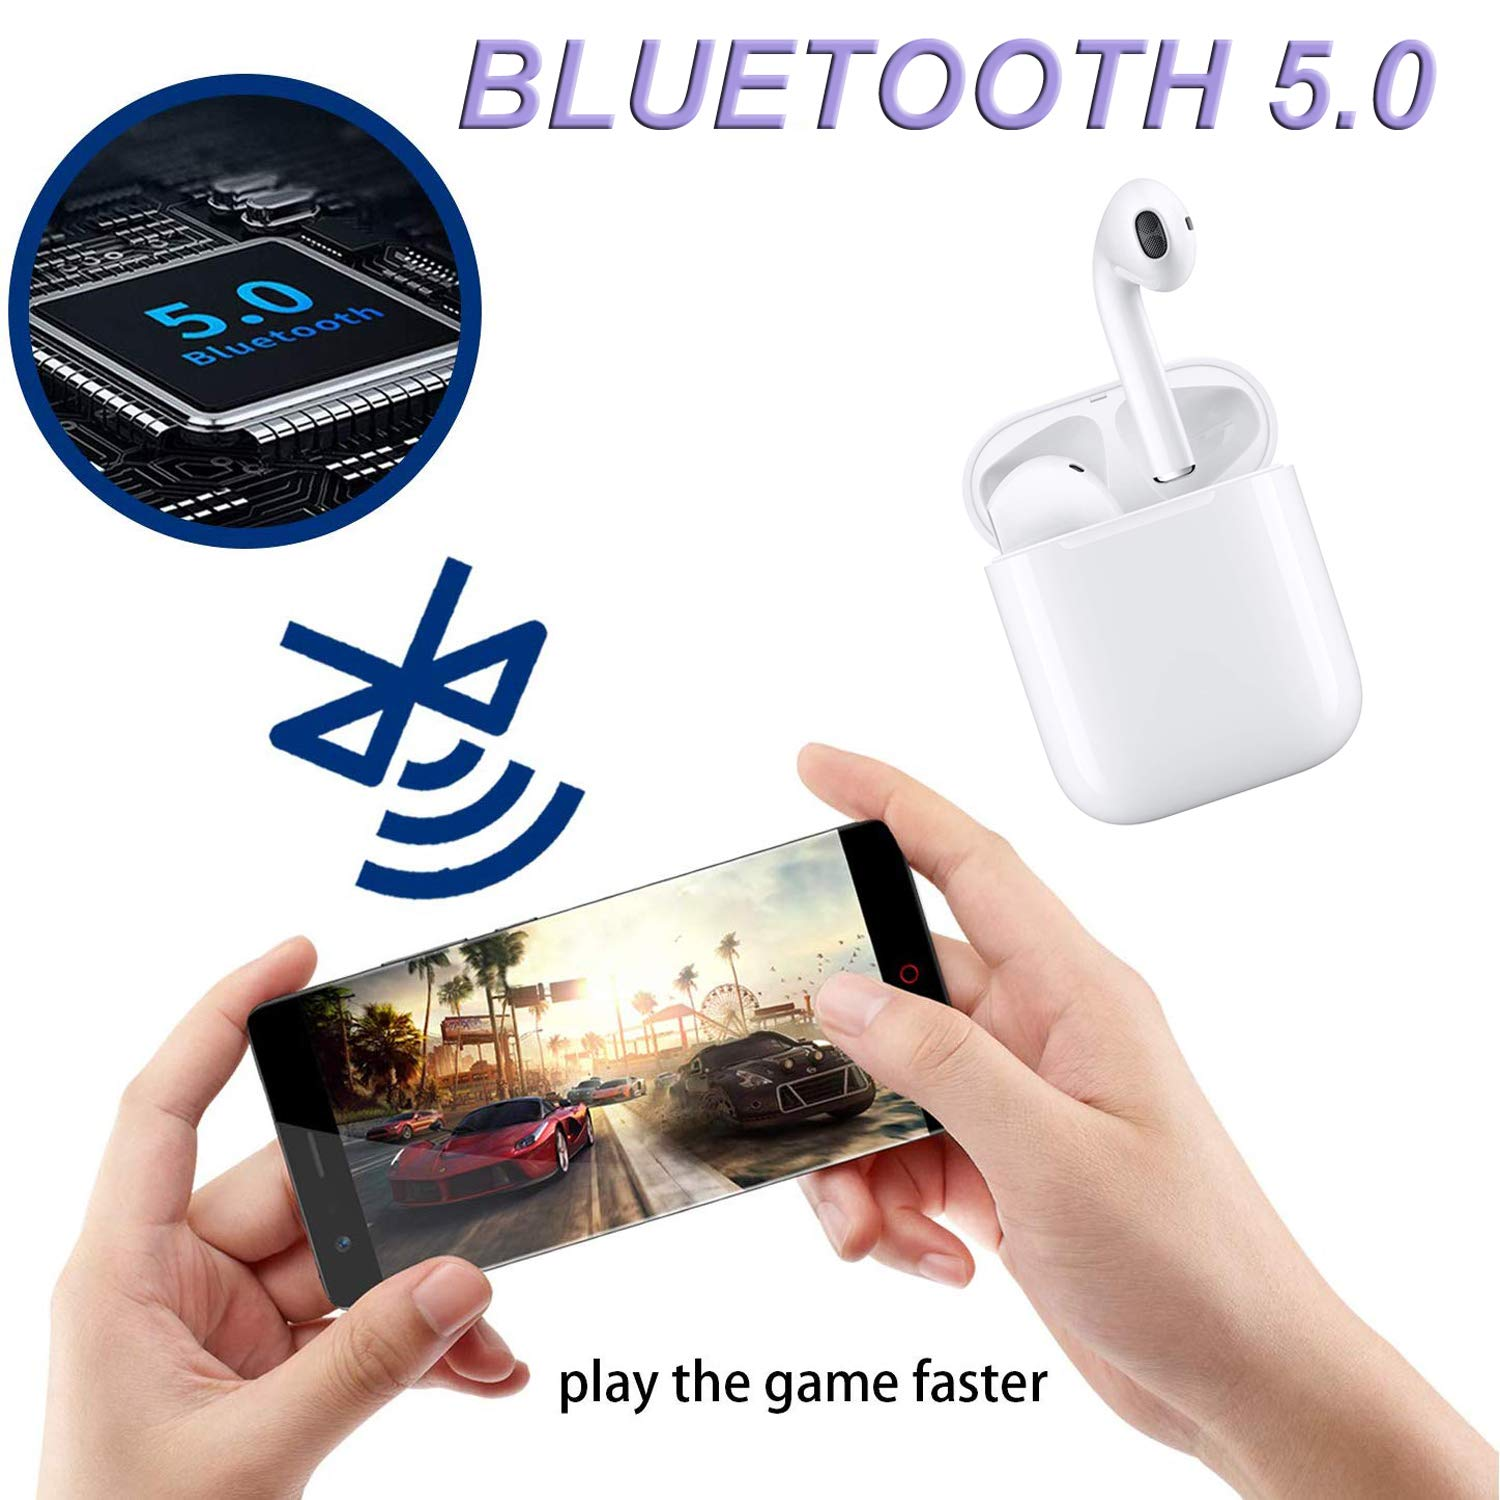 Touch AIRYXKJ Bluetooth 5.0 Wireless Earbuds, Noise Canceling Sports Headphones, IPX5 Waterproof HiFi Stereo Earphones in-Ear Built-in Mic Headset for iPhone Samsung Android Apple Airpods white-01